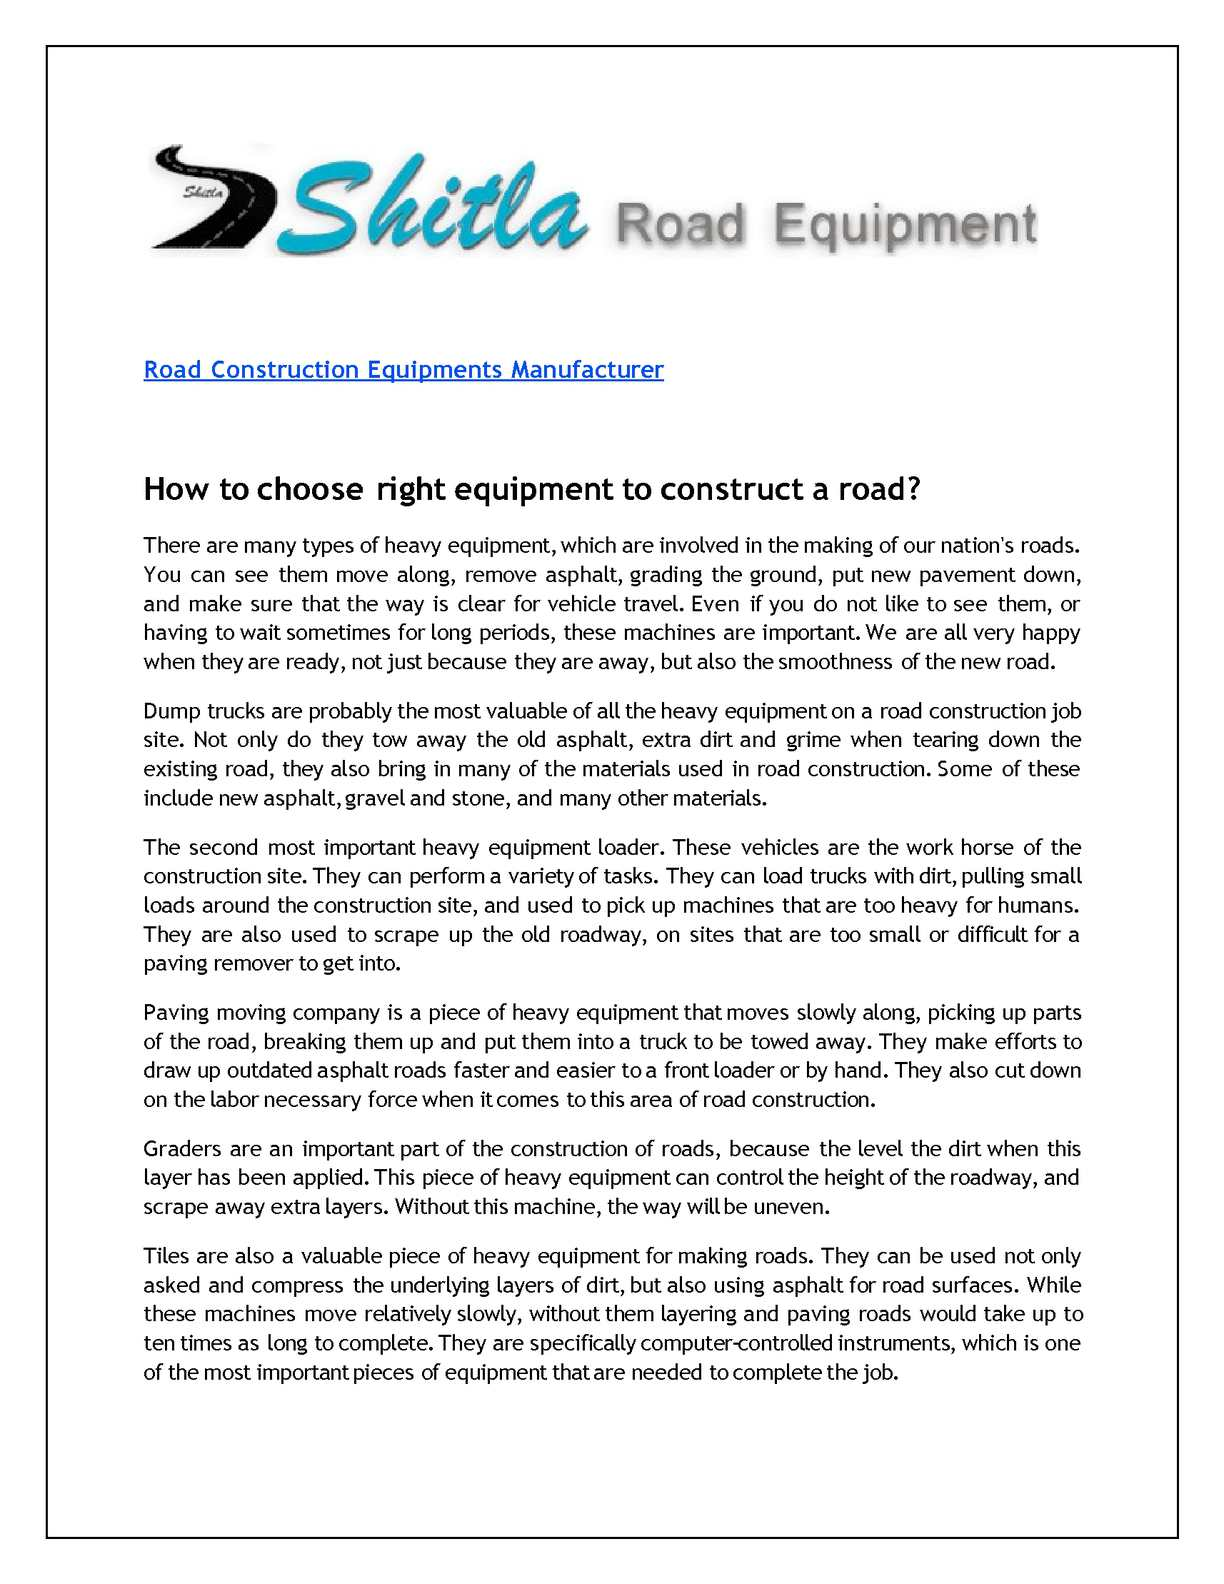 Calaméo - How to choose right equipment to construct a road?